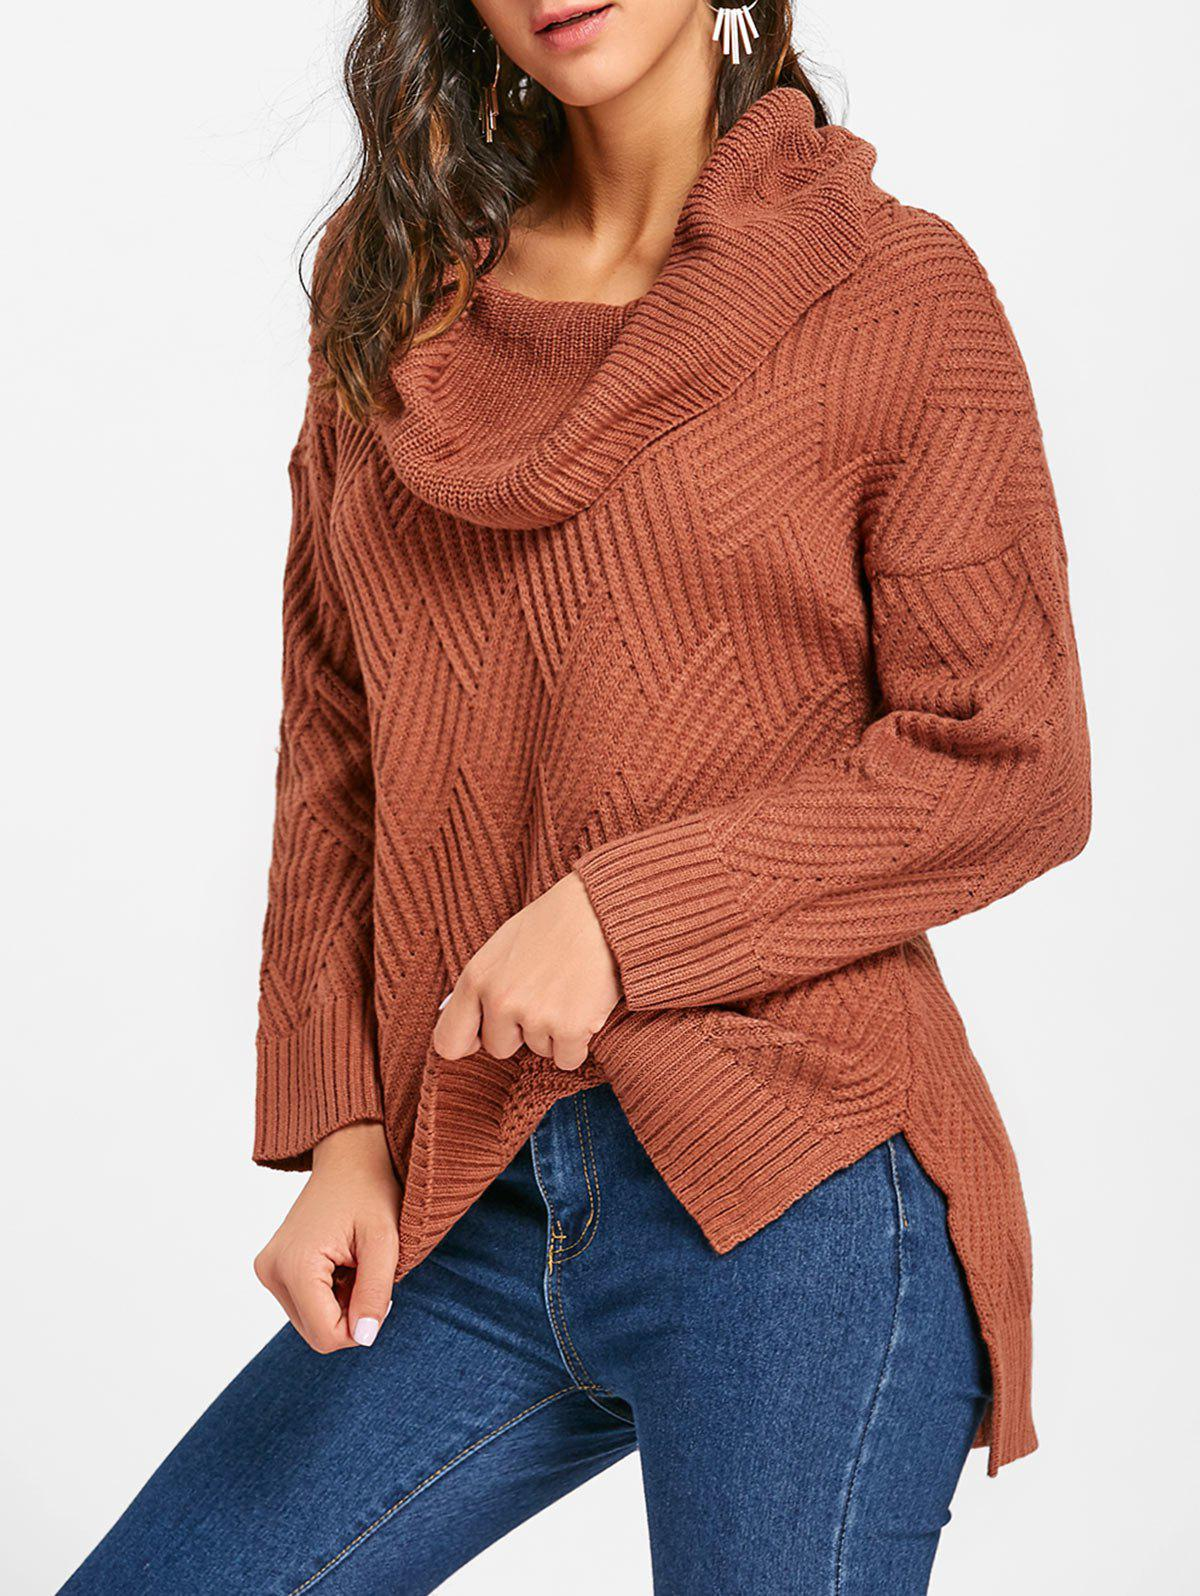 Cowl Neck Side Slit Knitted Sweater - BROWN XL